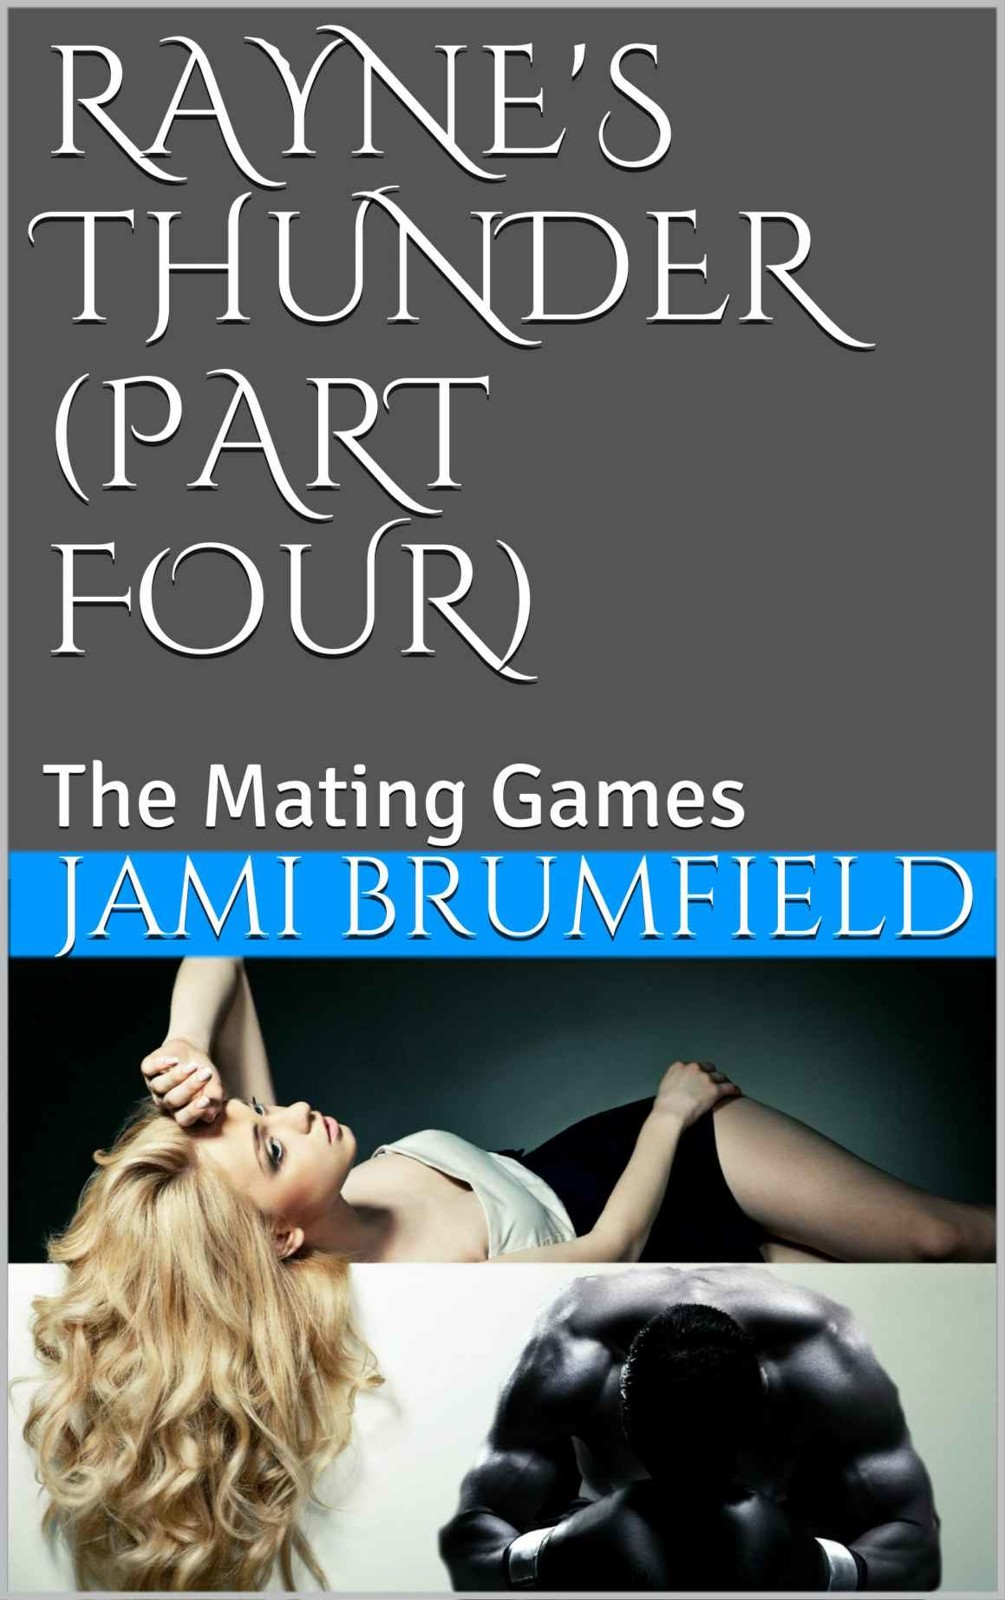 Rayne's Thunder Part Four: The Mating Games by Jami Brumfield